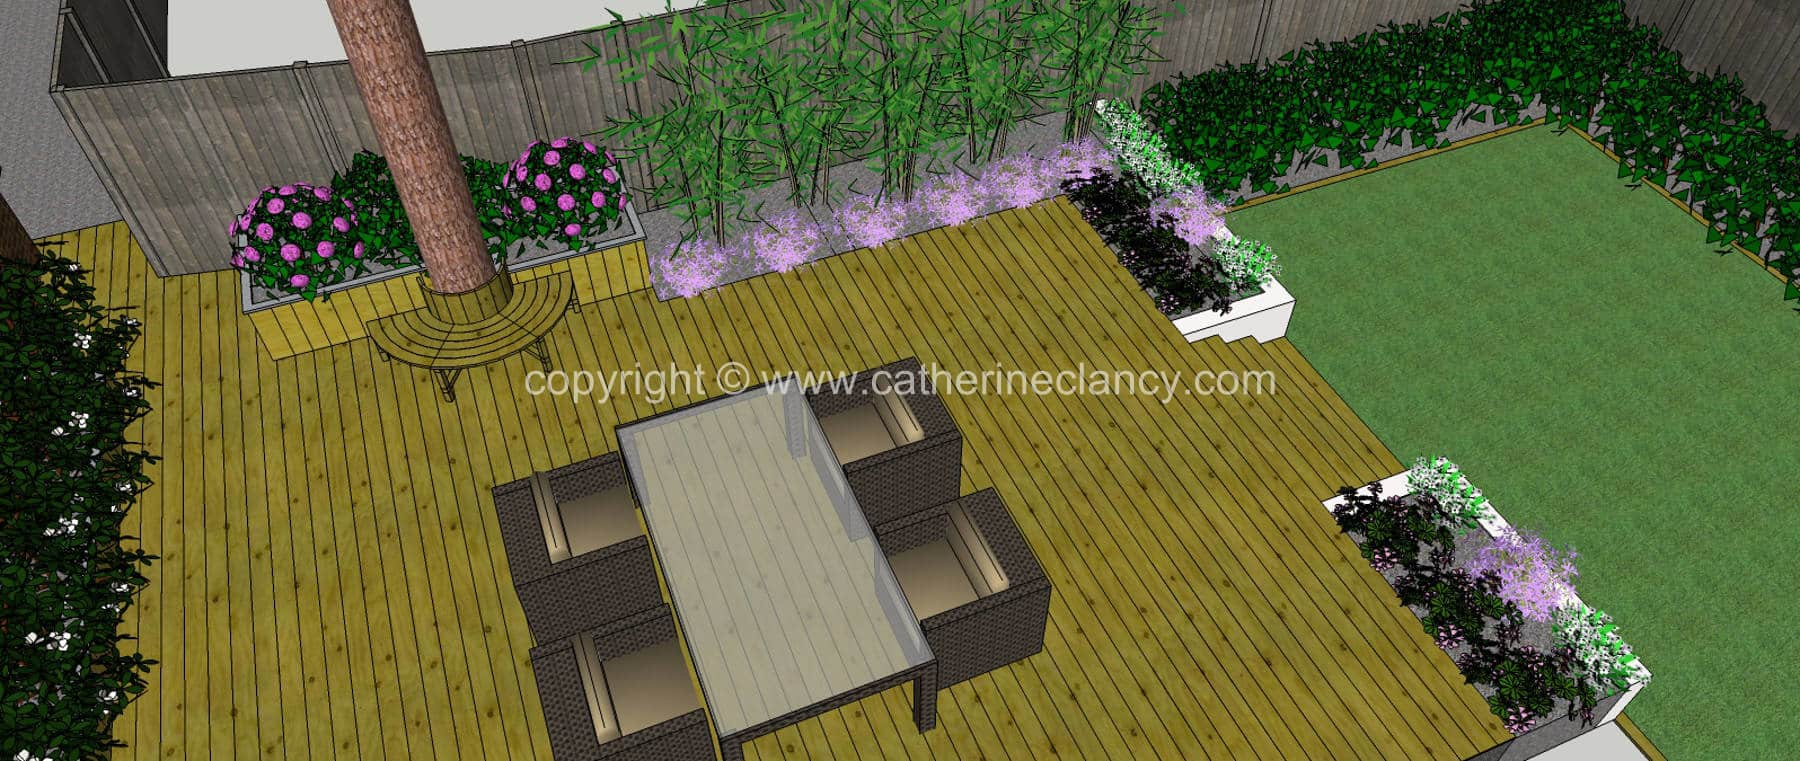 blackheath-deck-garden-10